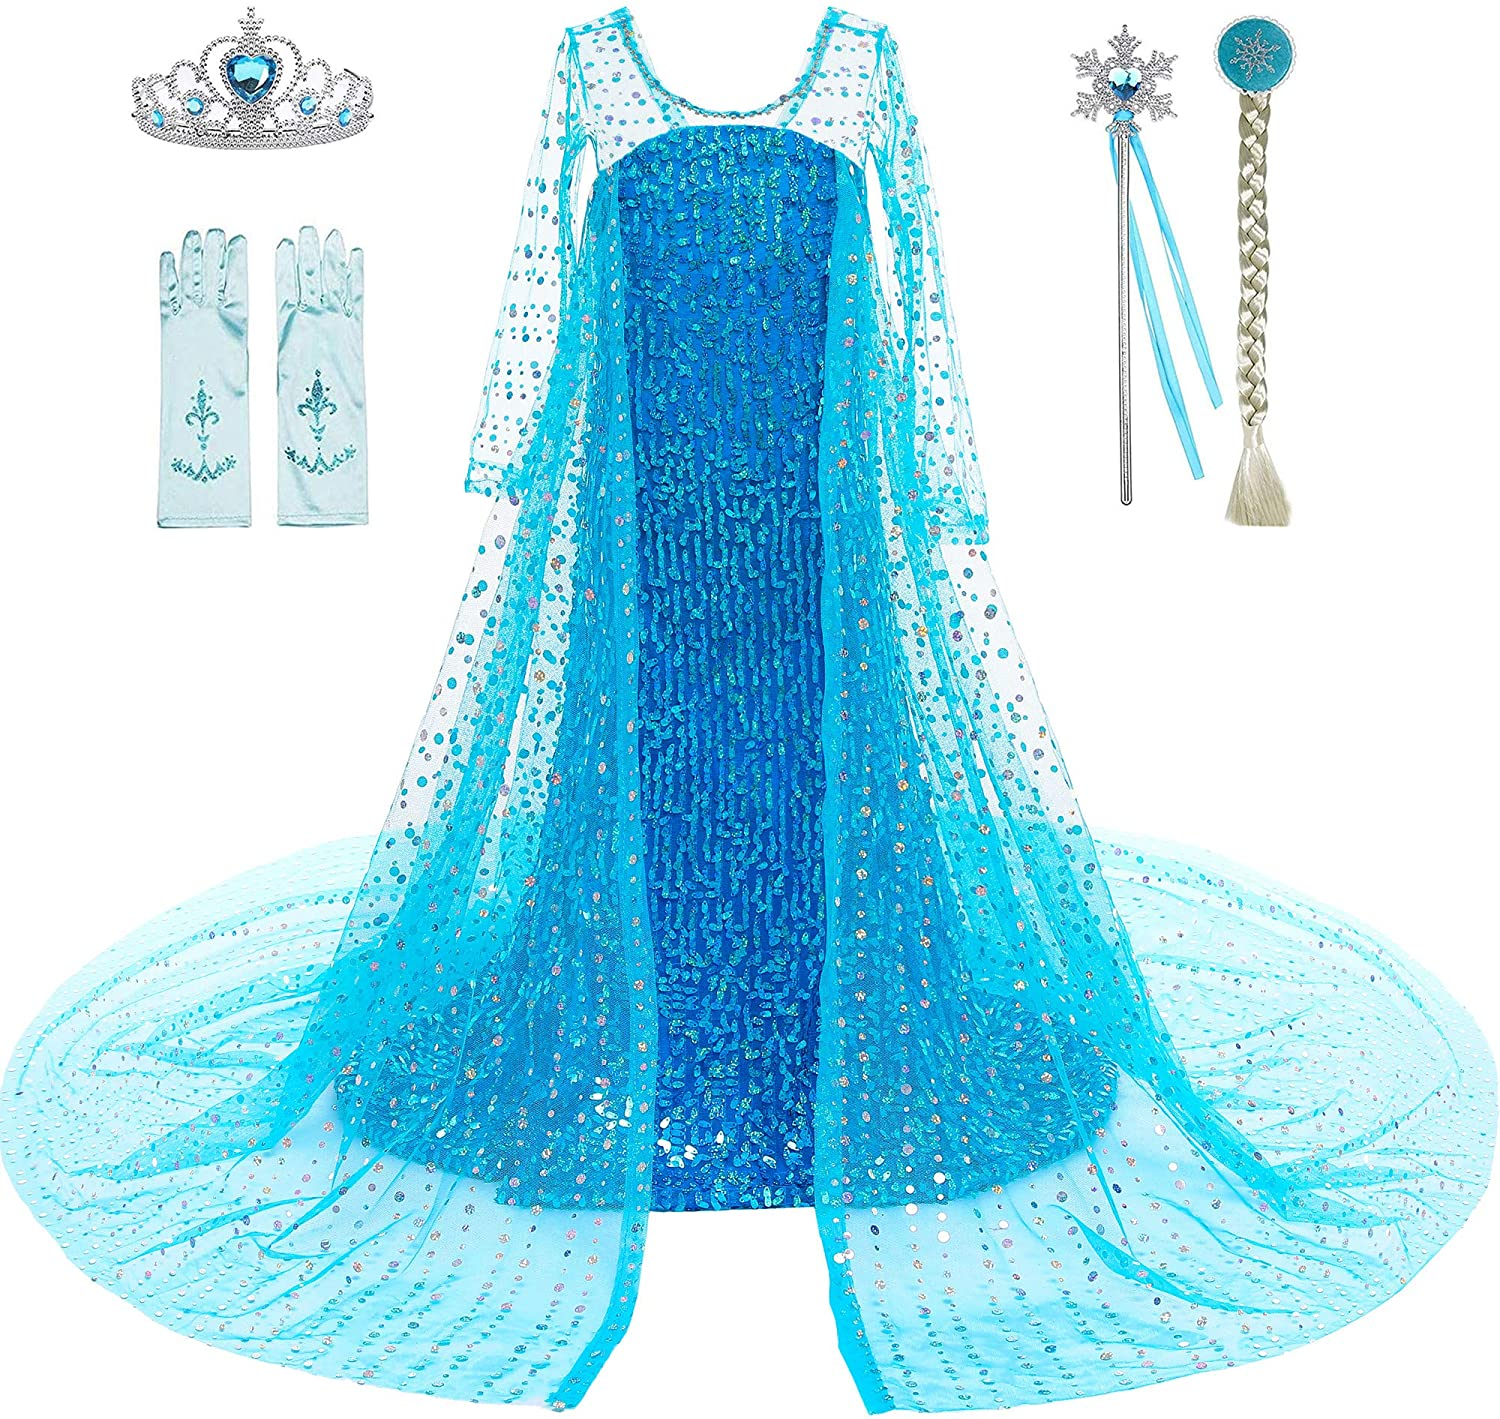 Princess Elsa Costume for Girls Birthday Party Dress up with Tiara,Wand,Wig,Gloves for Little Girls 3-12 Years